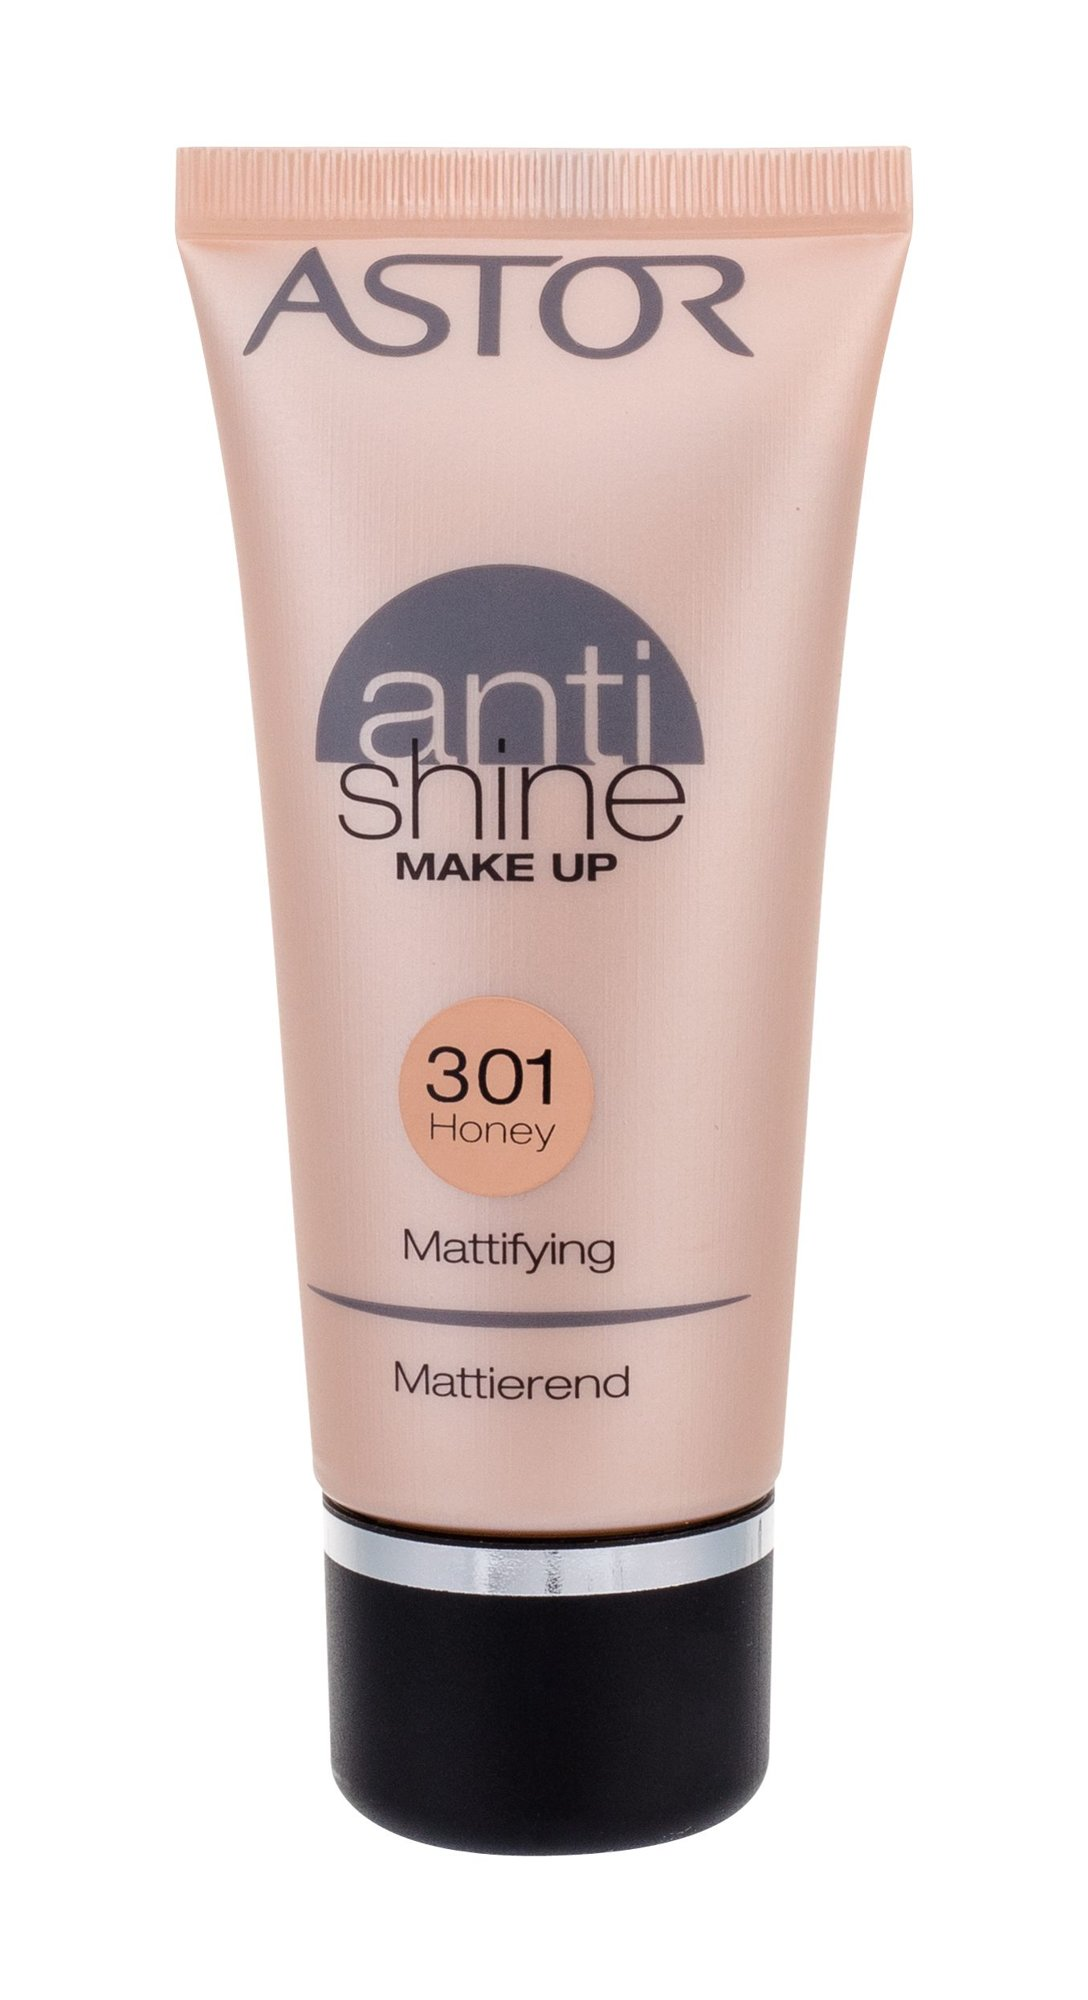 ASTOR Anti Shine Makeup Cosmetic 30ml 301 Honey